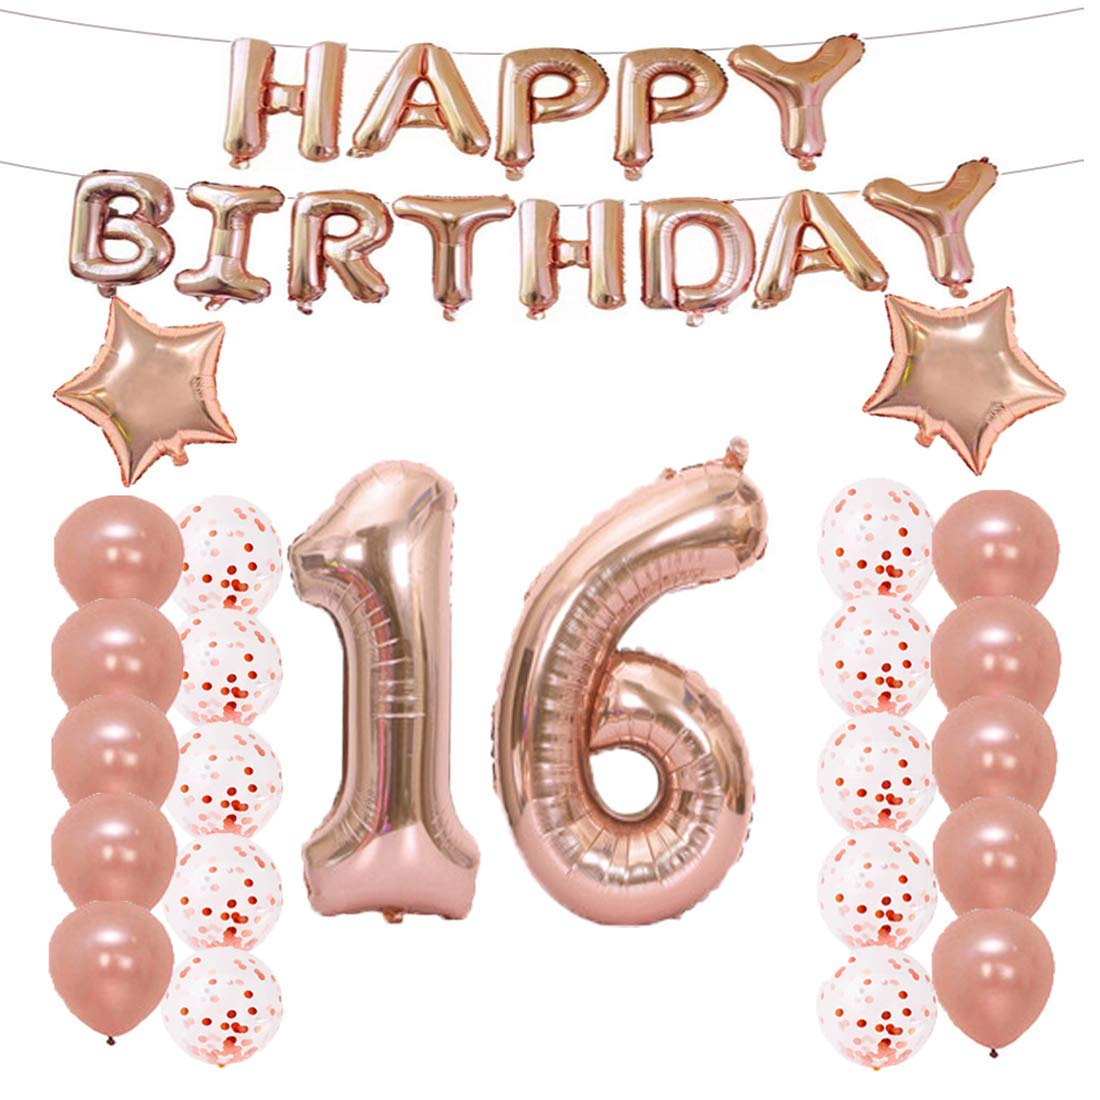 LQQDD 16th Birthday Decorations Party Supplies16th Balloons Rose GoldNumber 16 Mylar